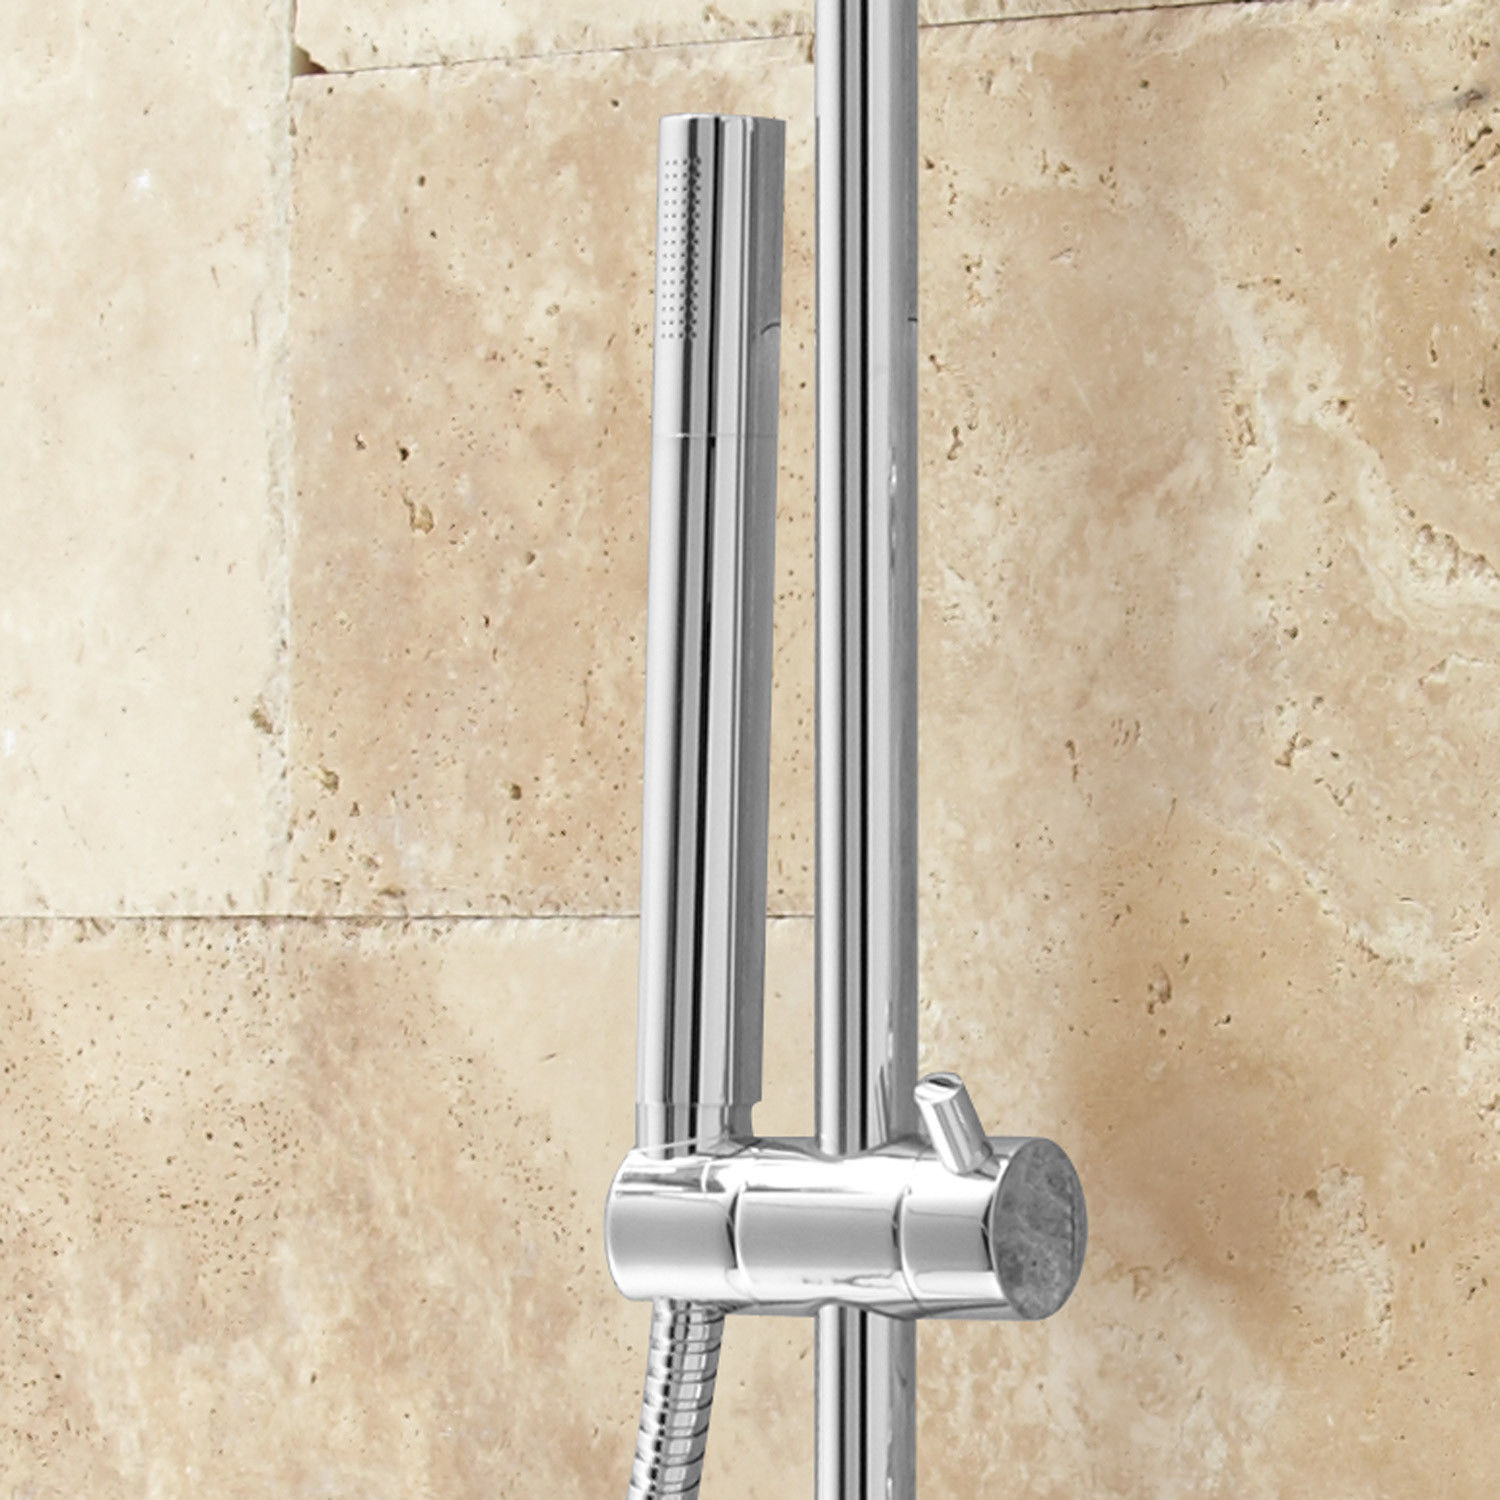 Cali Thermostatic Wall Mount Shower System With Six Body Jets in Chrome Finish